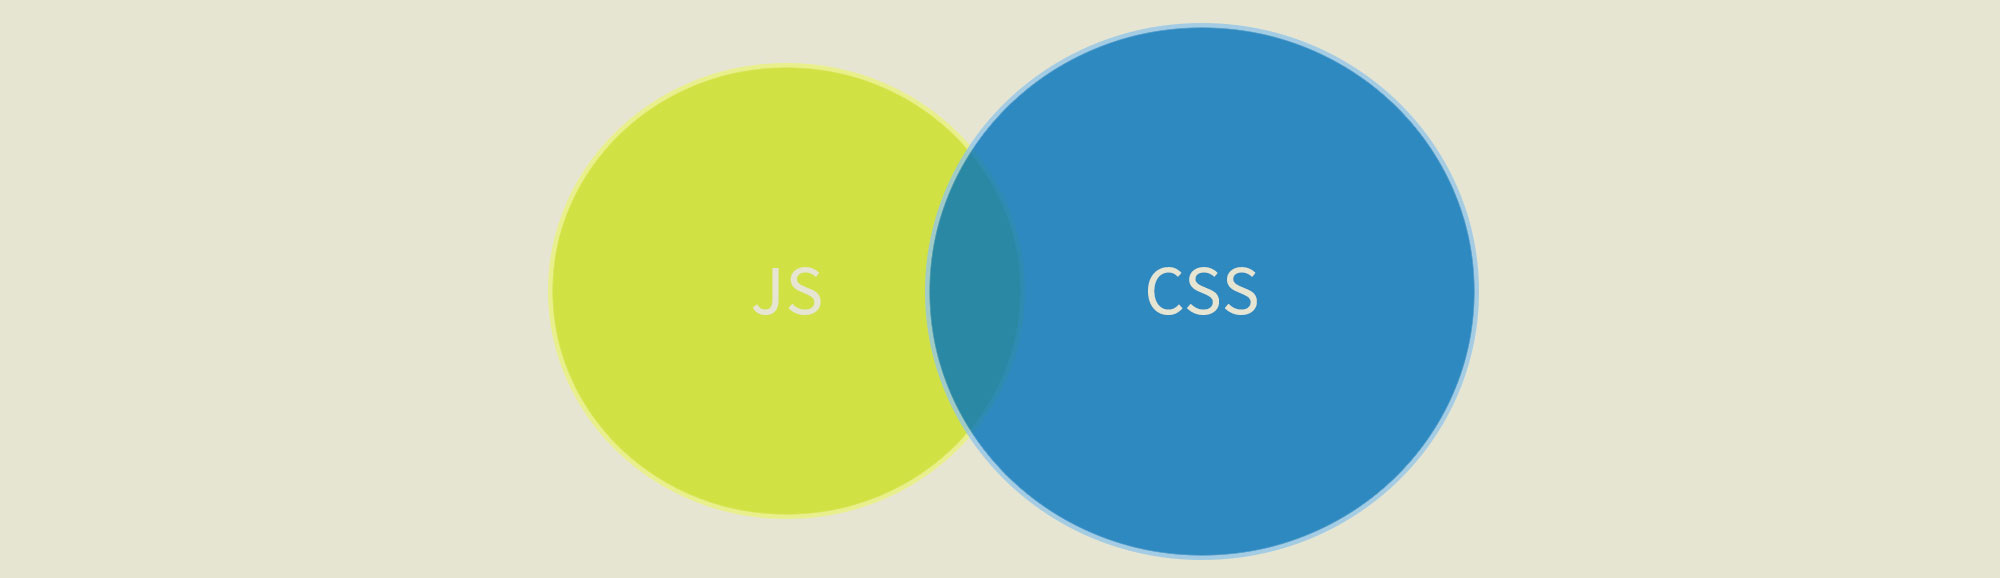 JavaScript and CSS circles